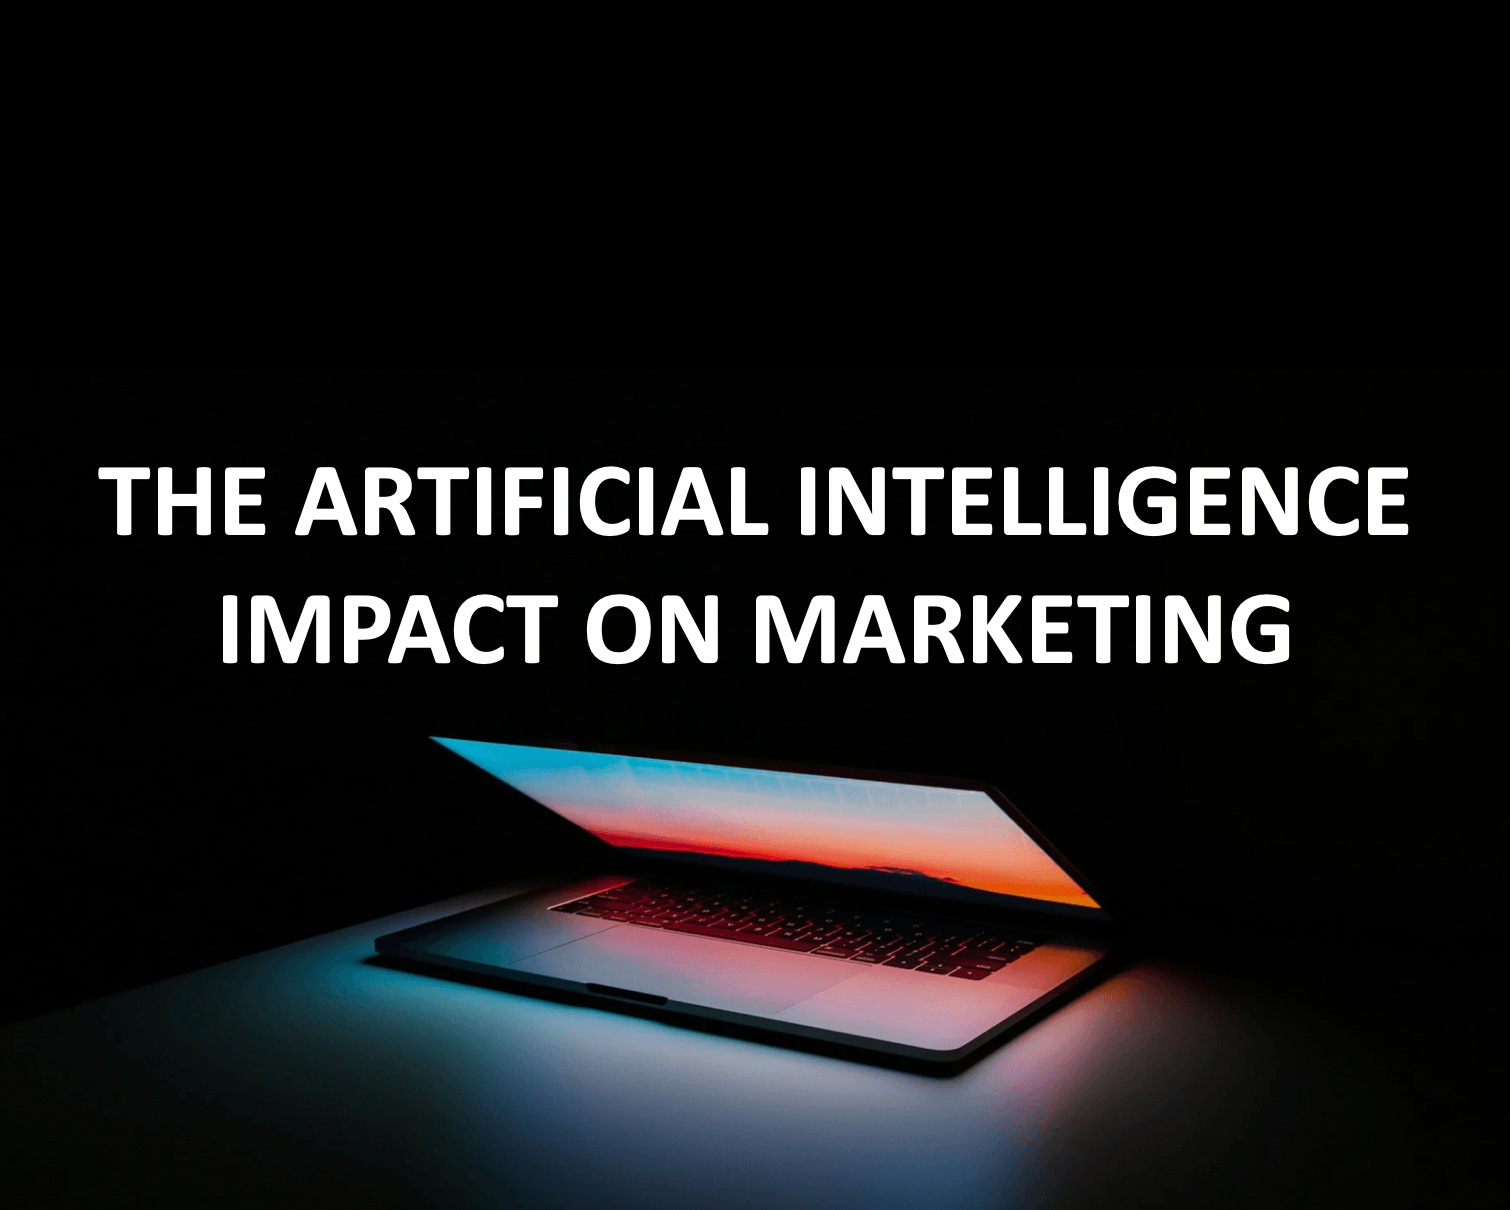 Artificial Intelligence impact on marketing